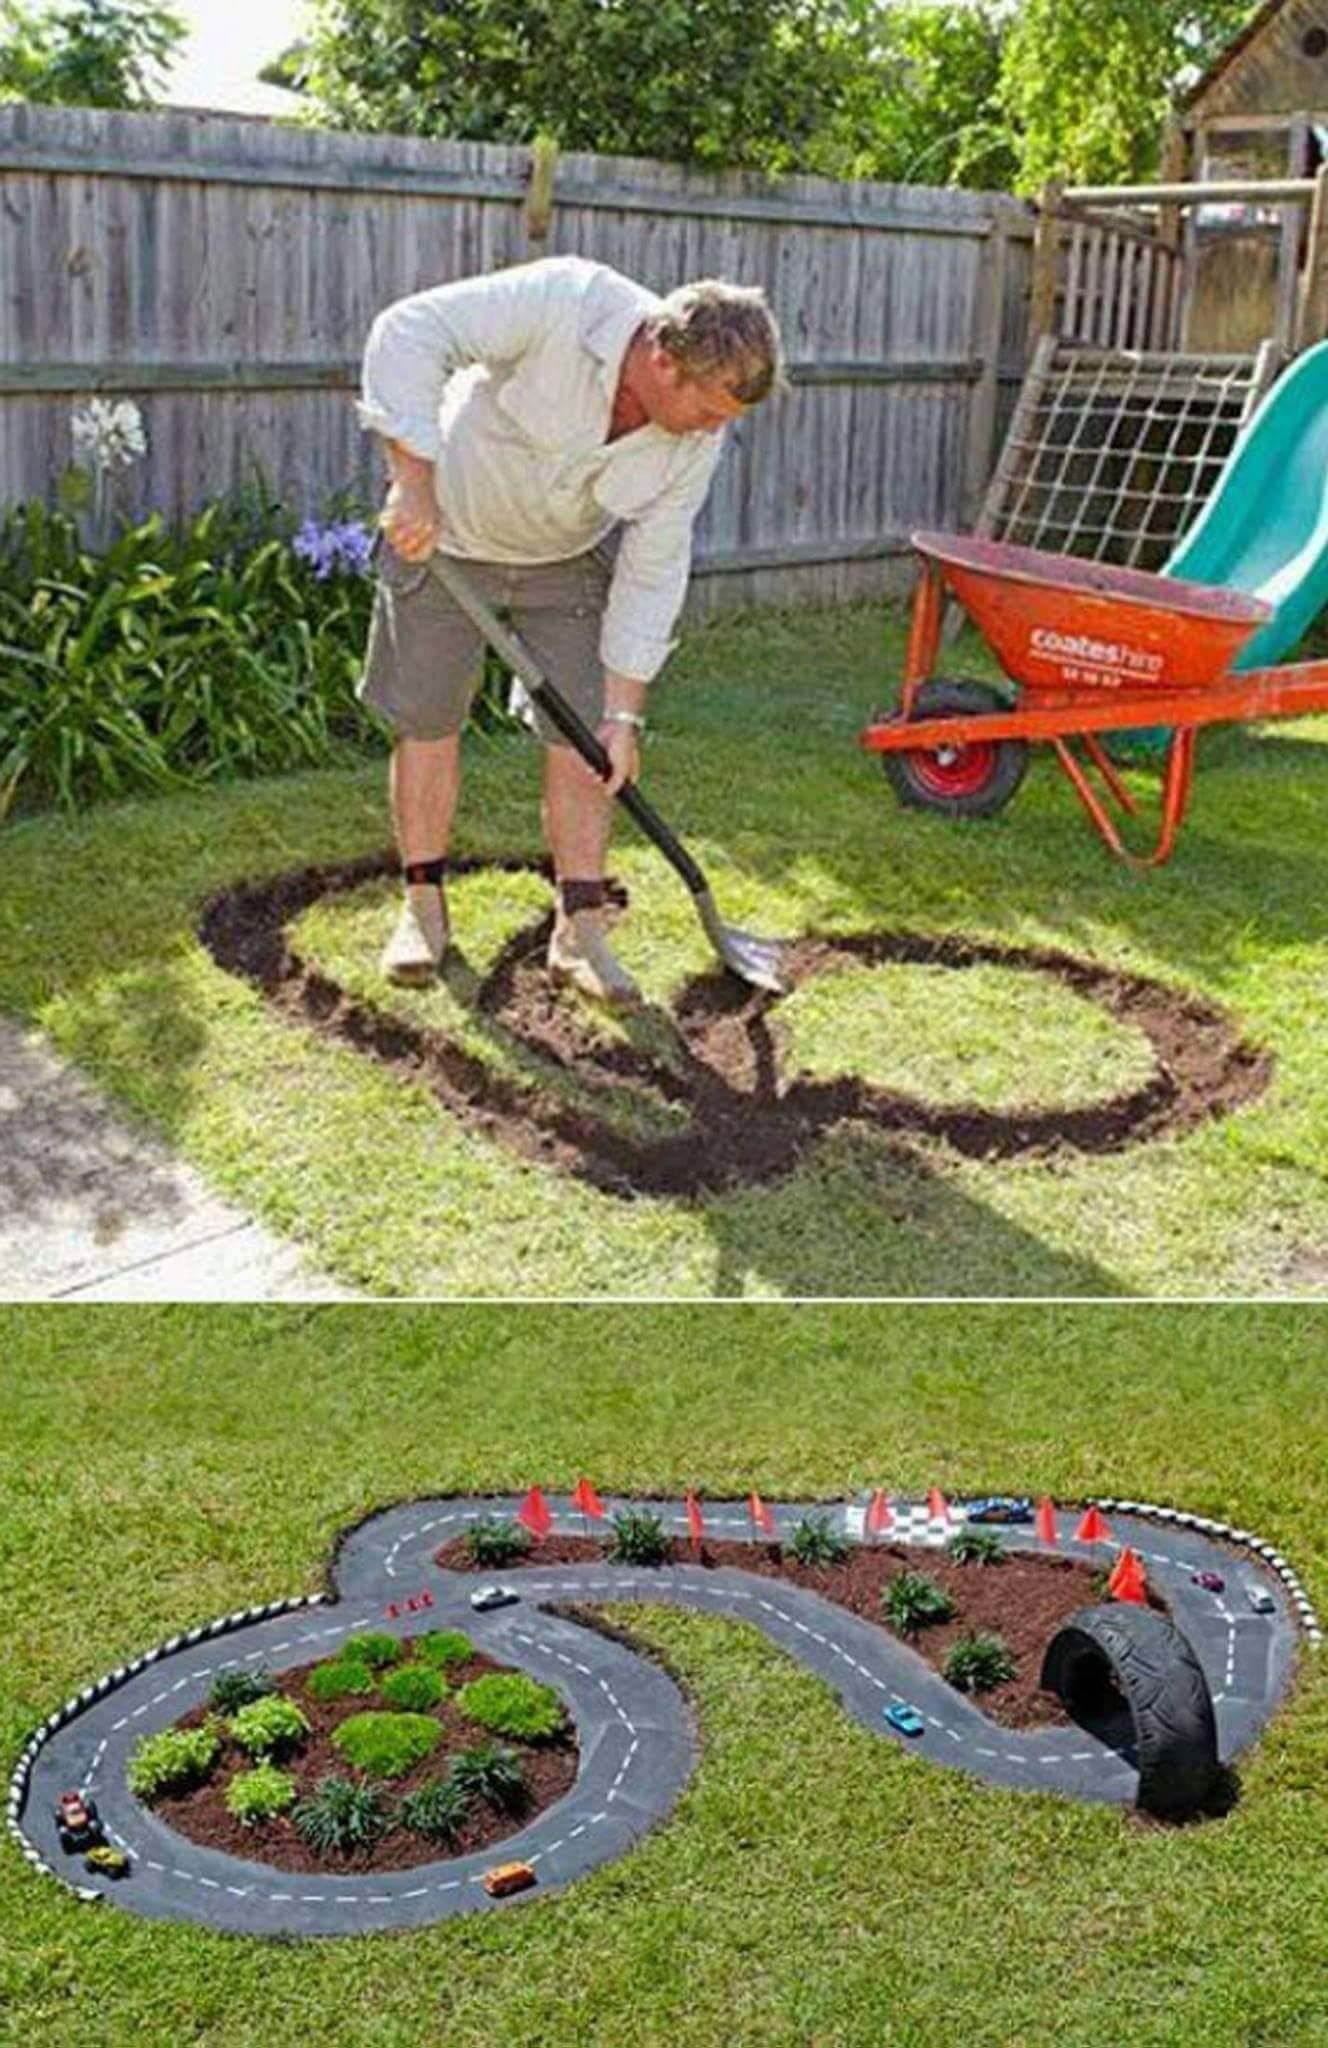 DIY Projects for Kids Inspired by Race Car Tracks | Pinterest ...